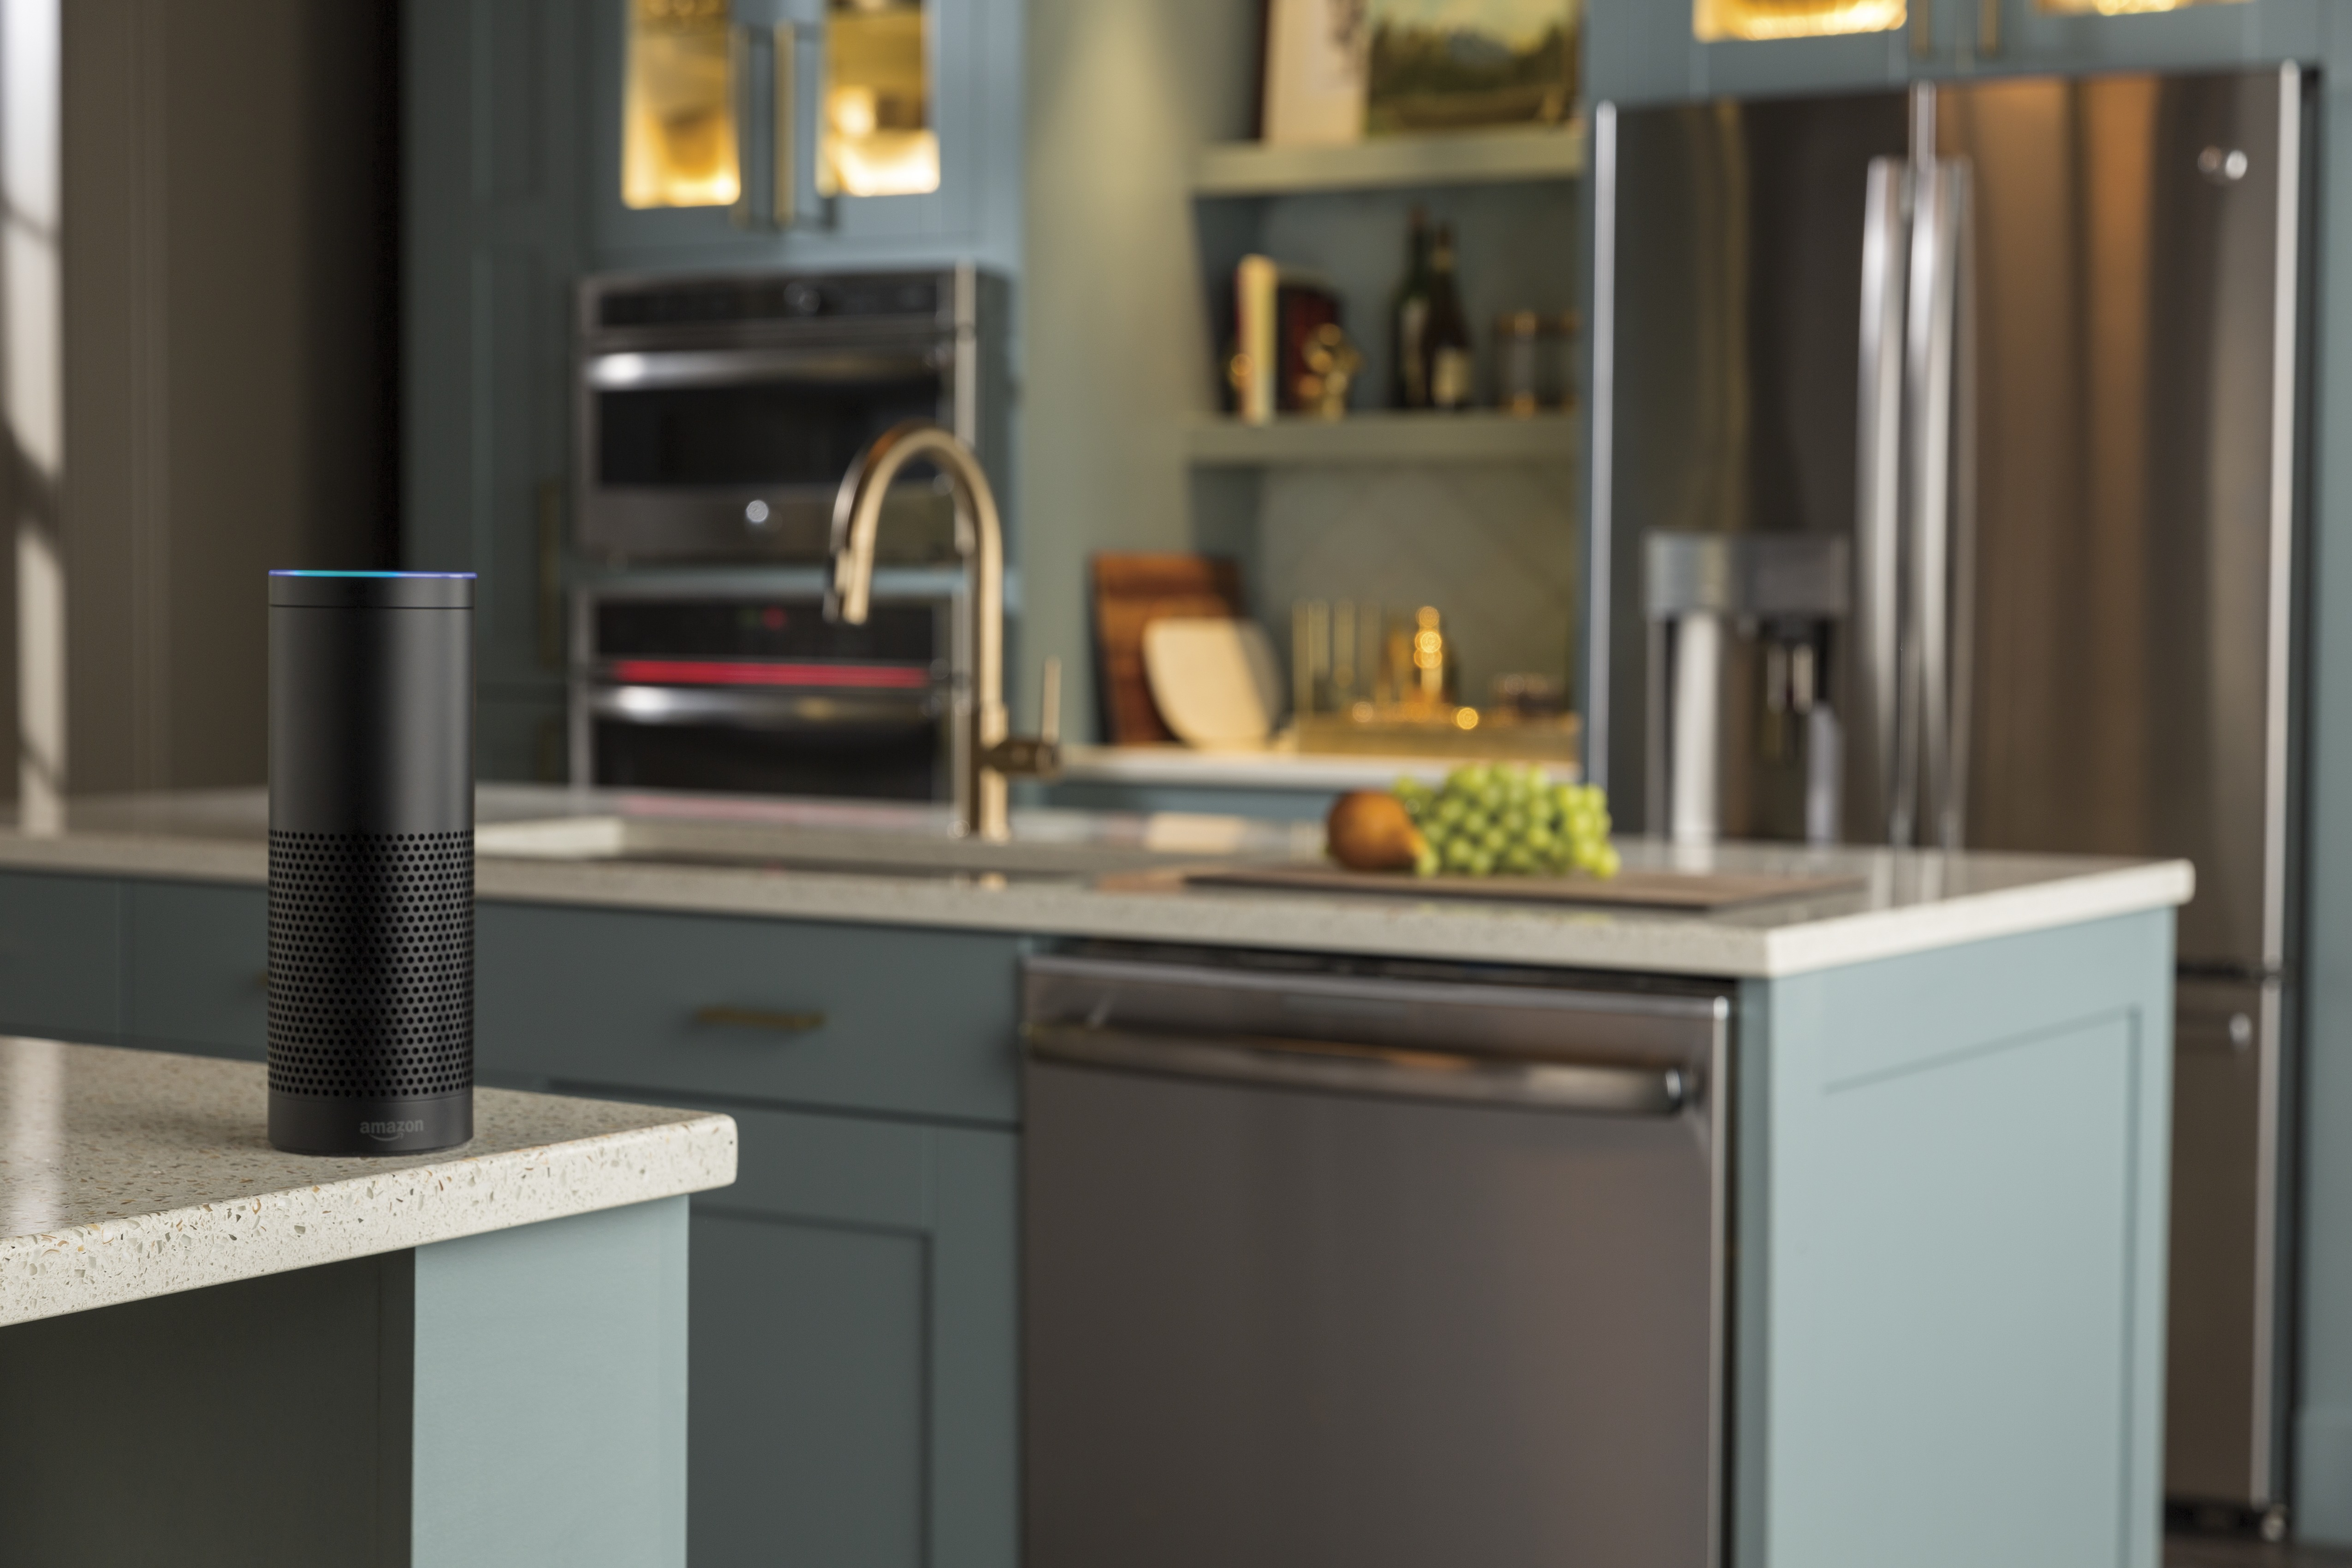 Appliances as a service in the kitchen sabine 39 s new house for High tech kitchen appliances